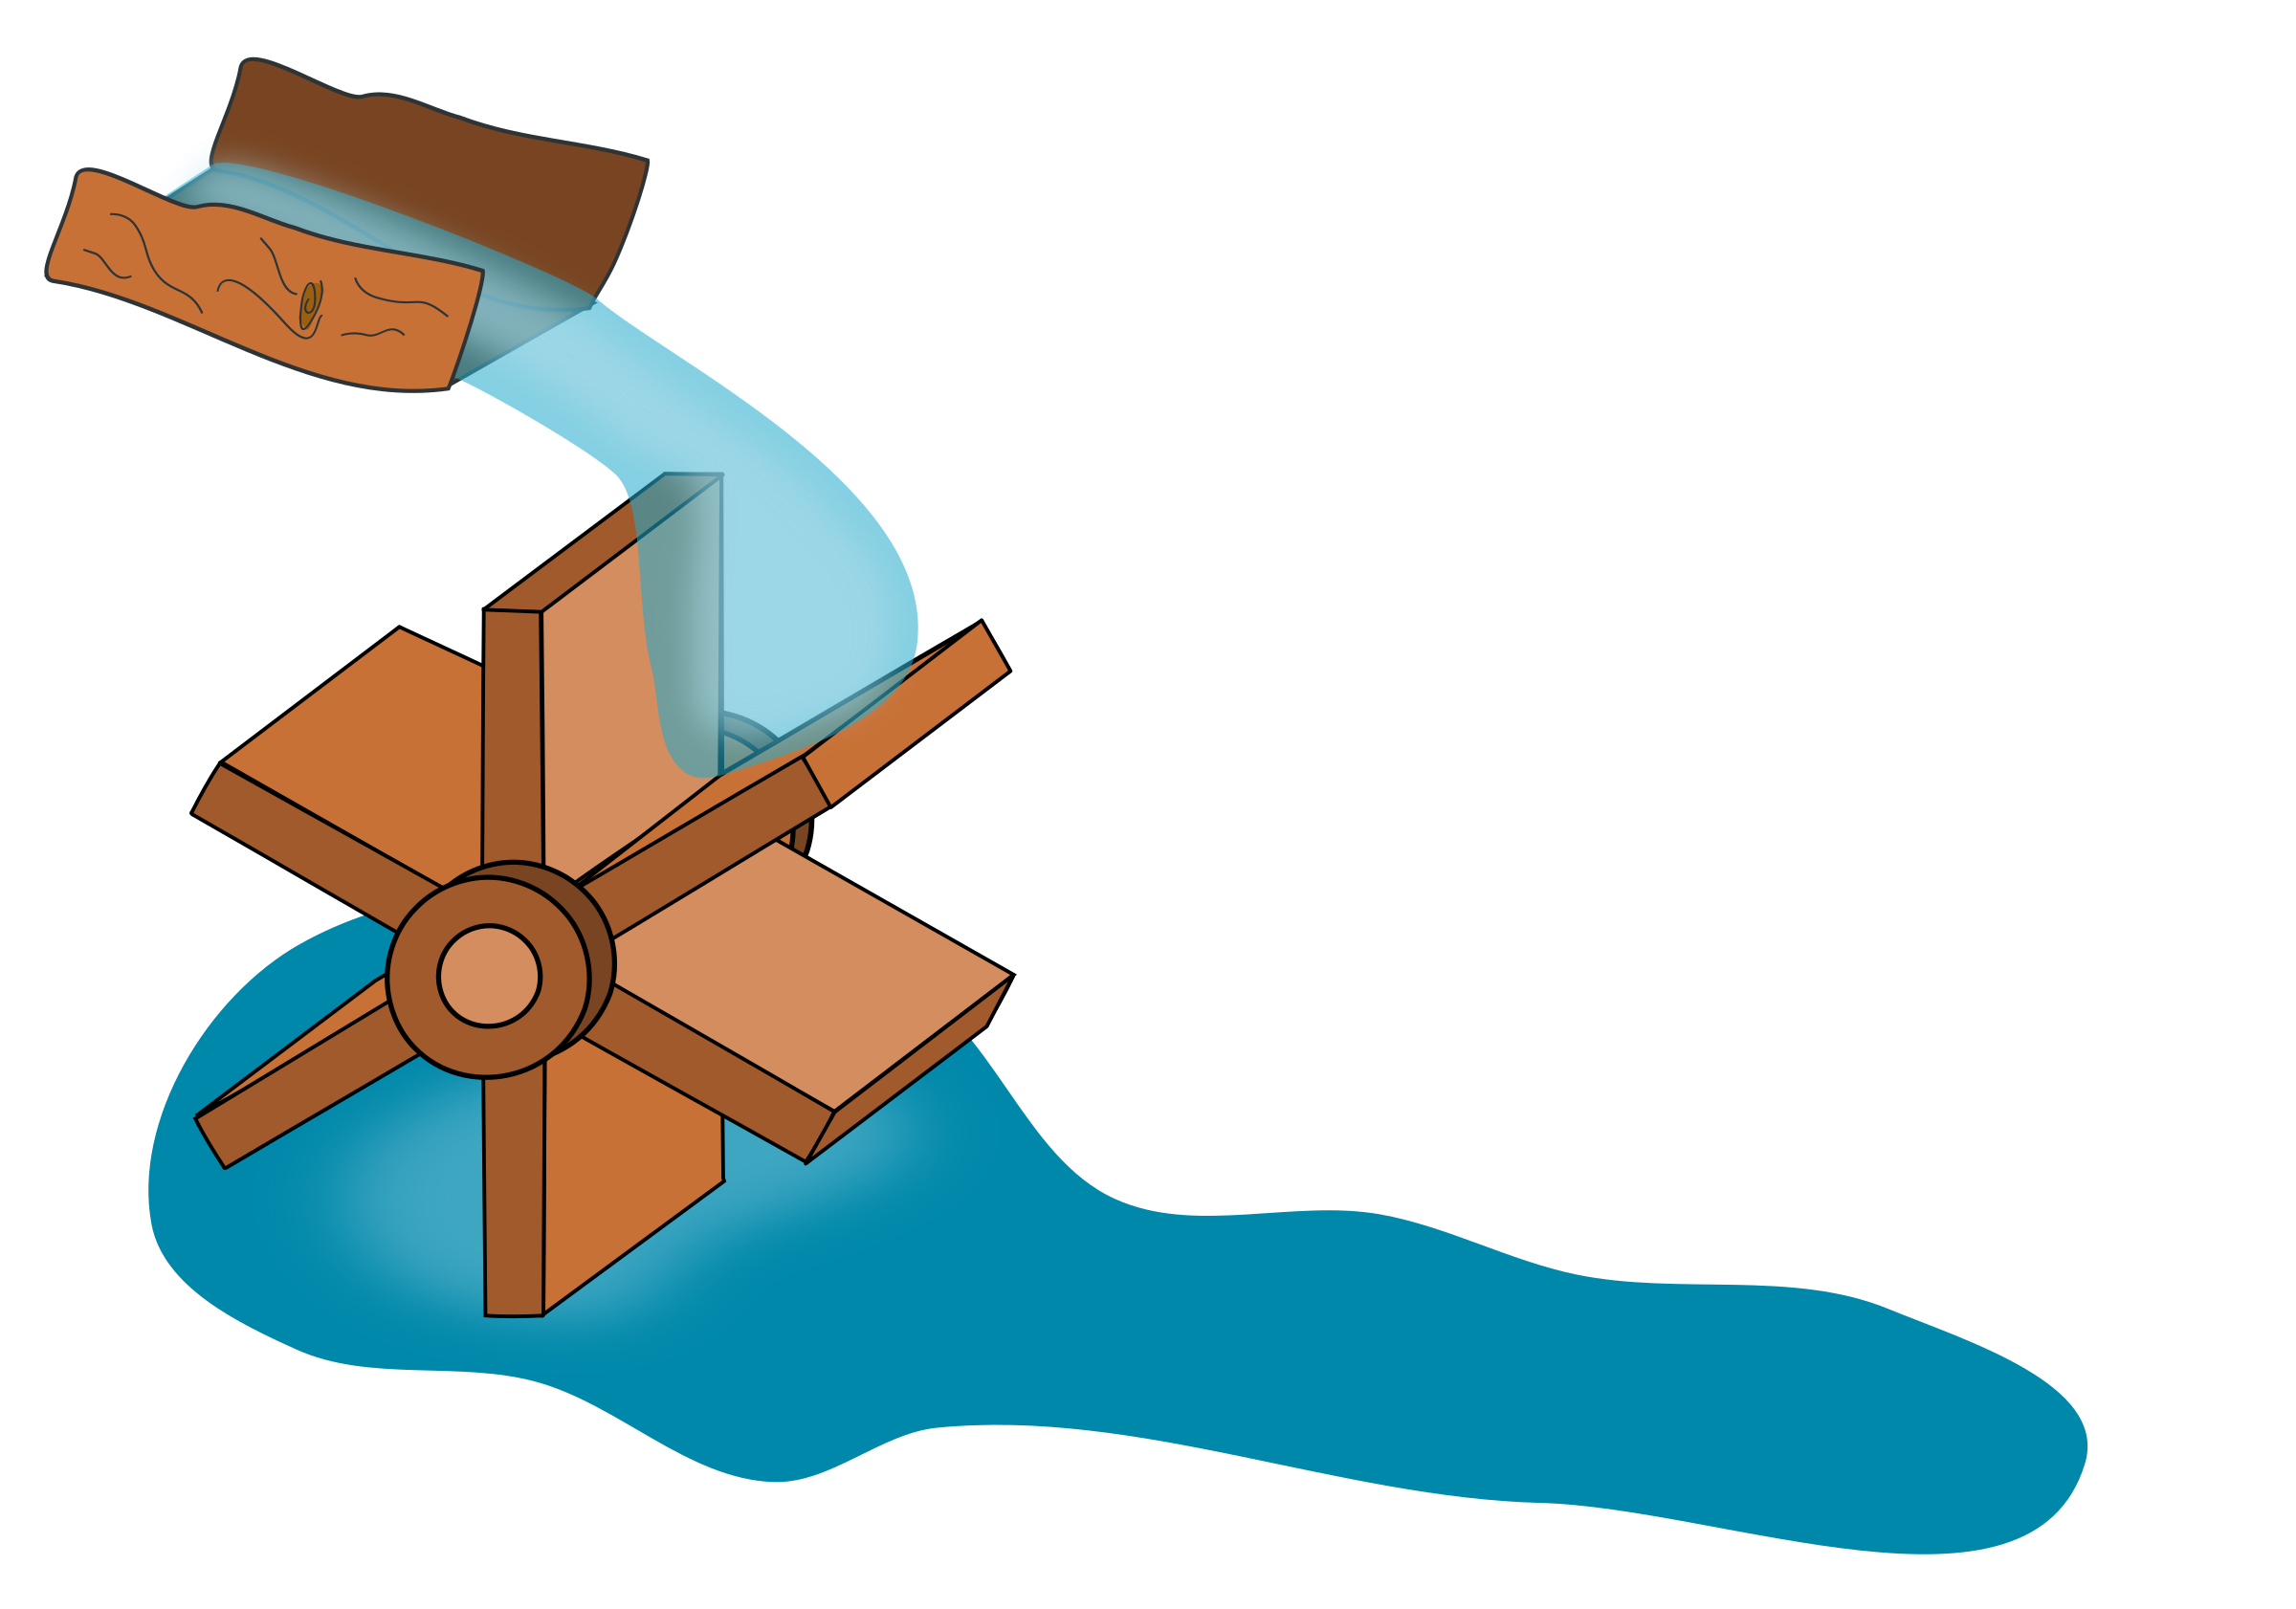 Water wheel big image. Therapy clipart psychosocial